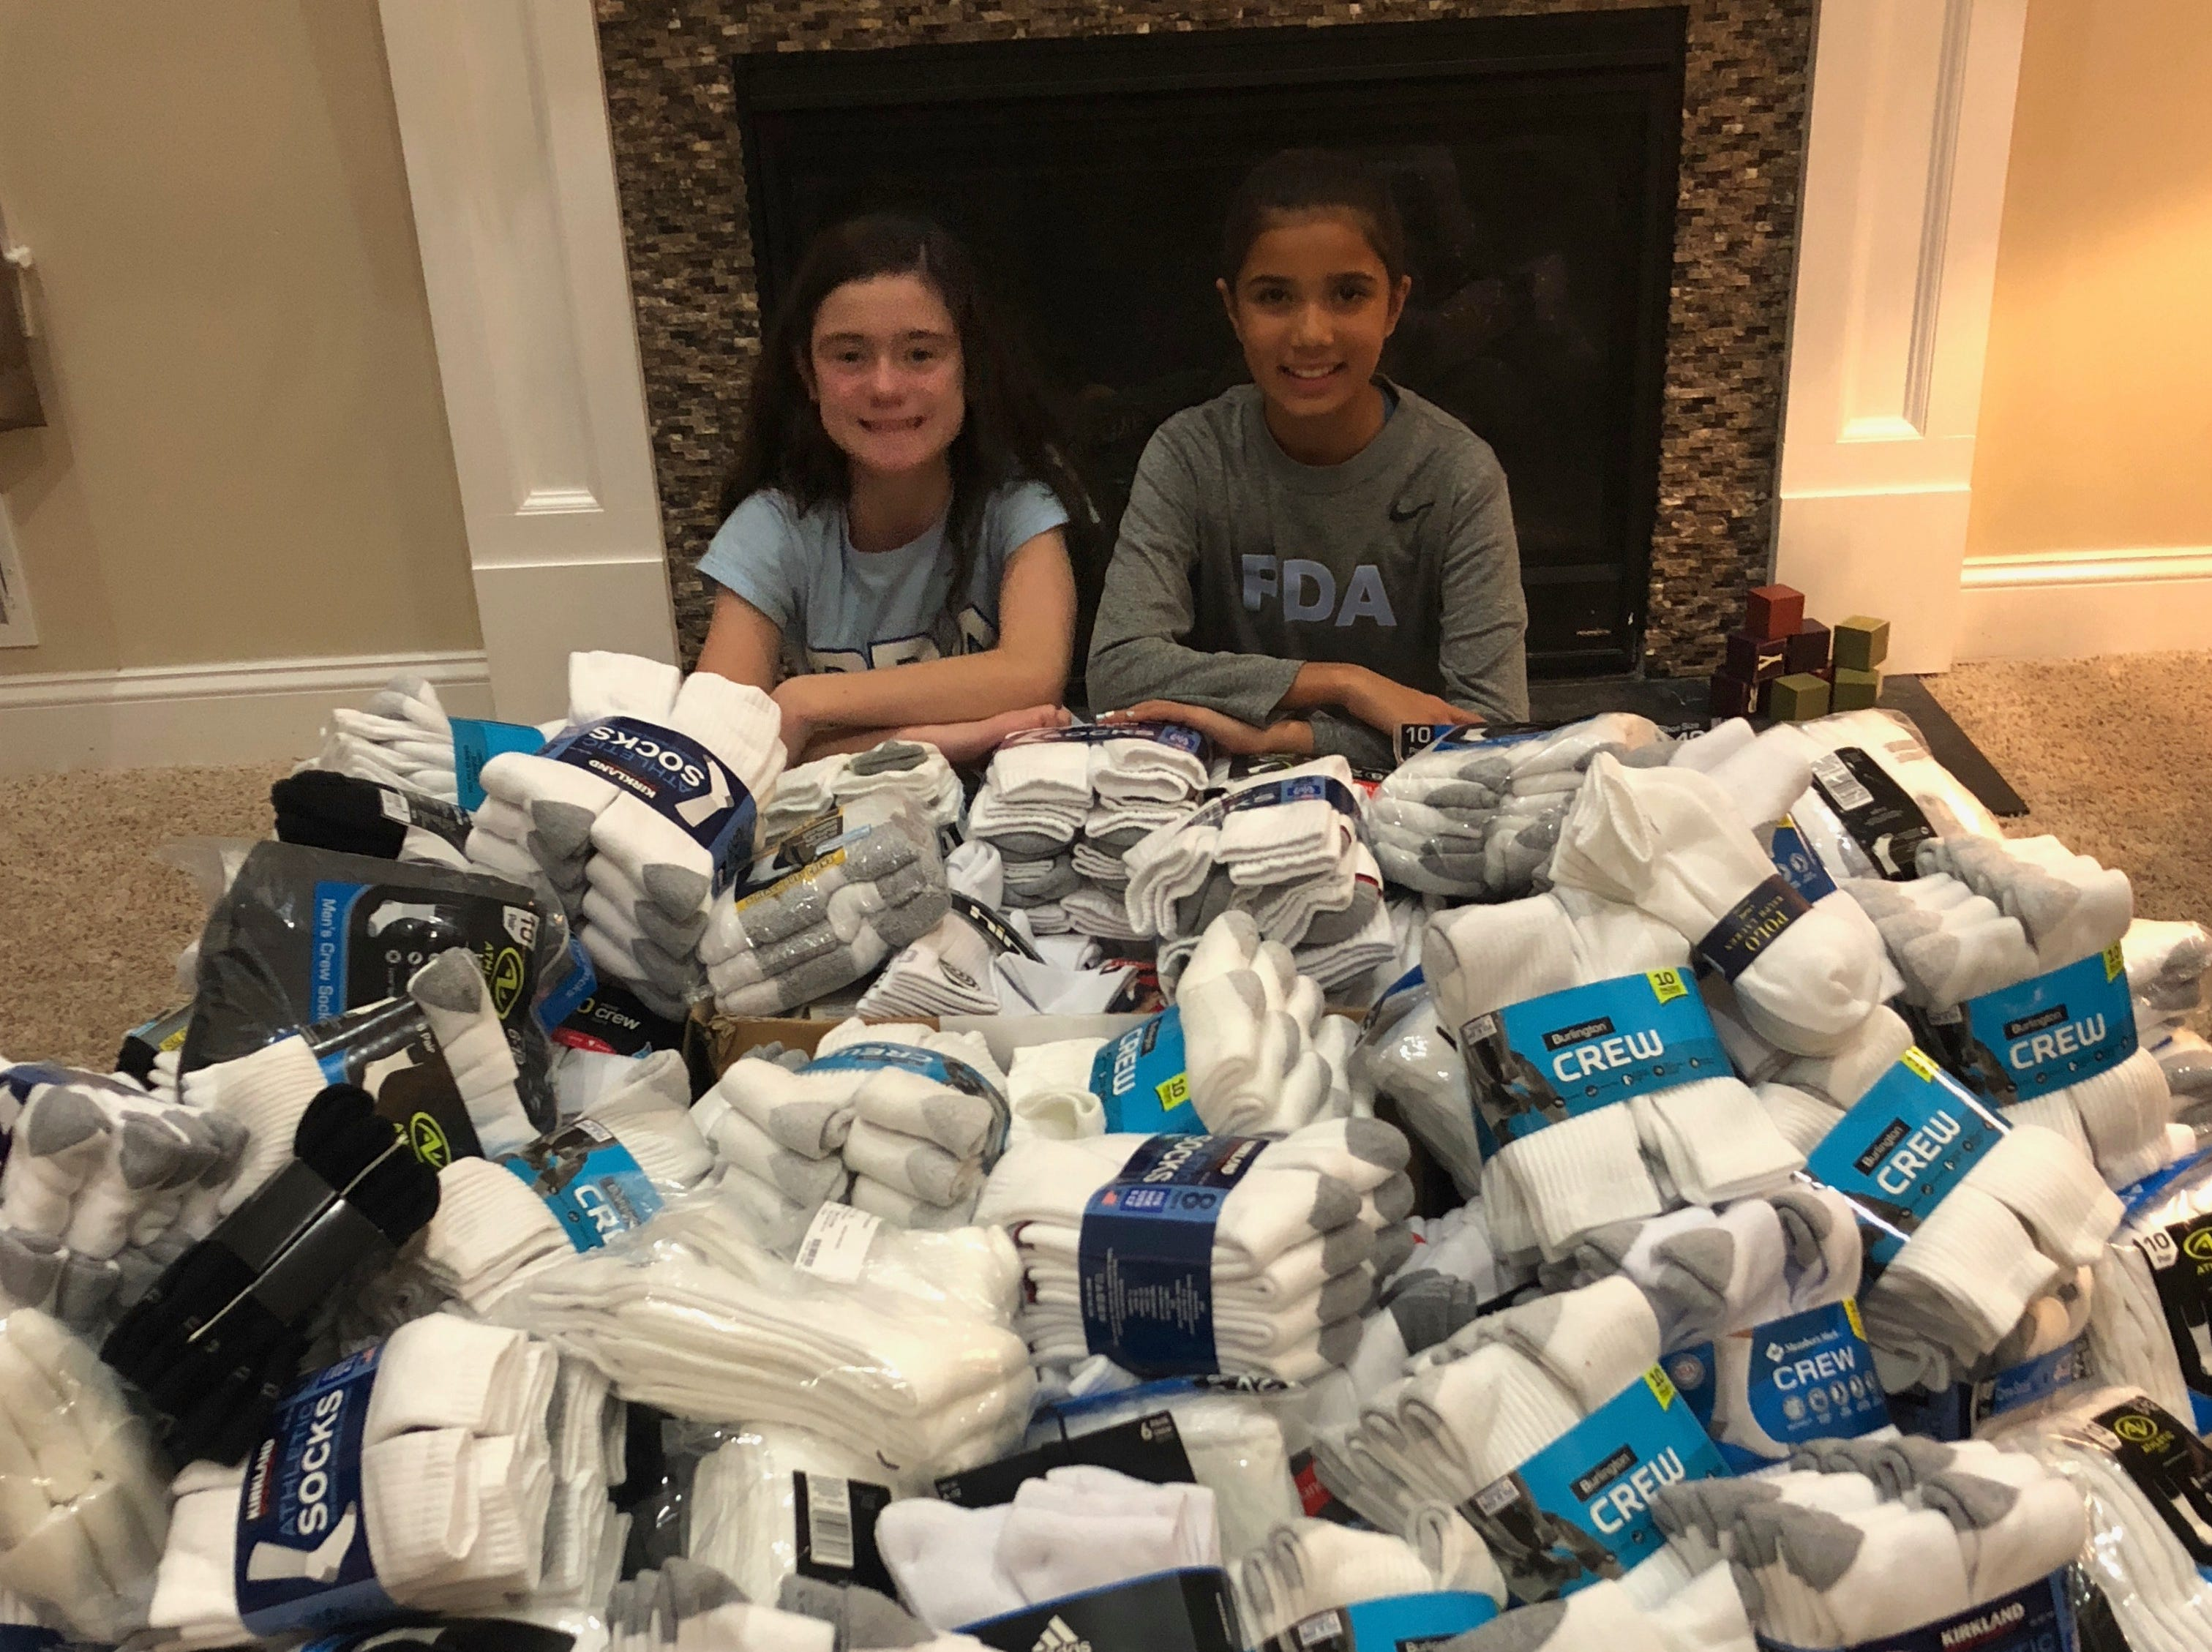 Maddie O'Neill and Kaya Singh with a large pile of socks collected through the generosity of the PDA community.